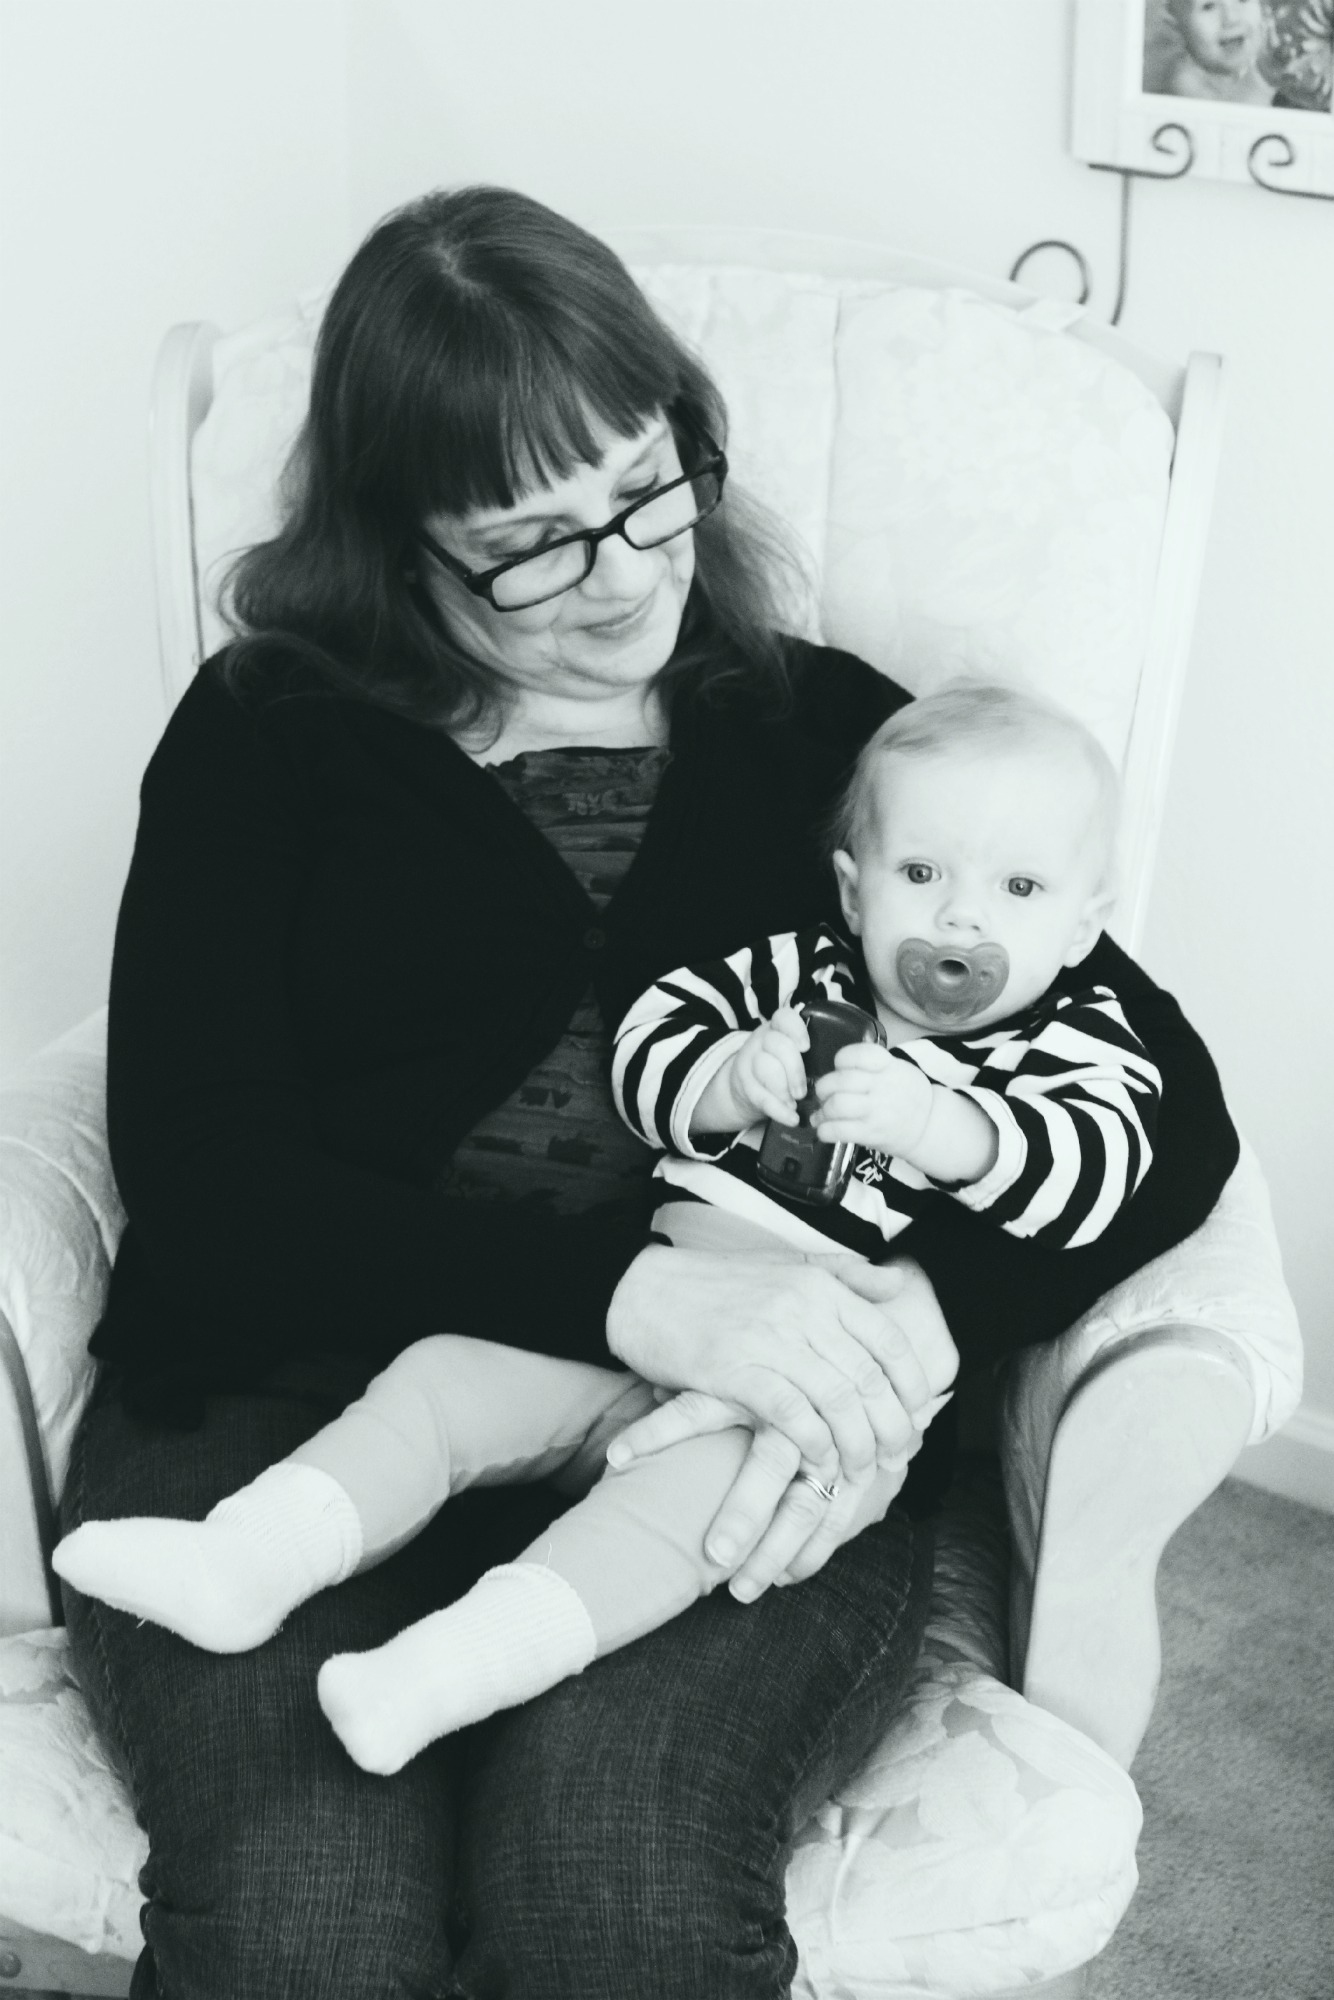 My mom and her first grand baby. She doesn't like to be in pictures ya'll so I never get pictures with her and I. ;)